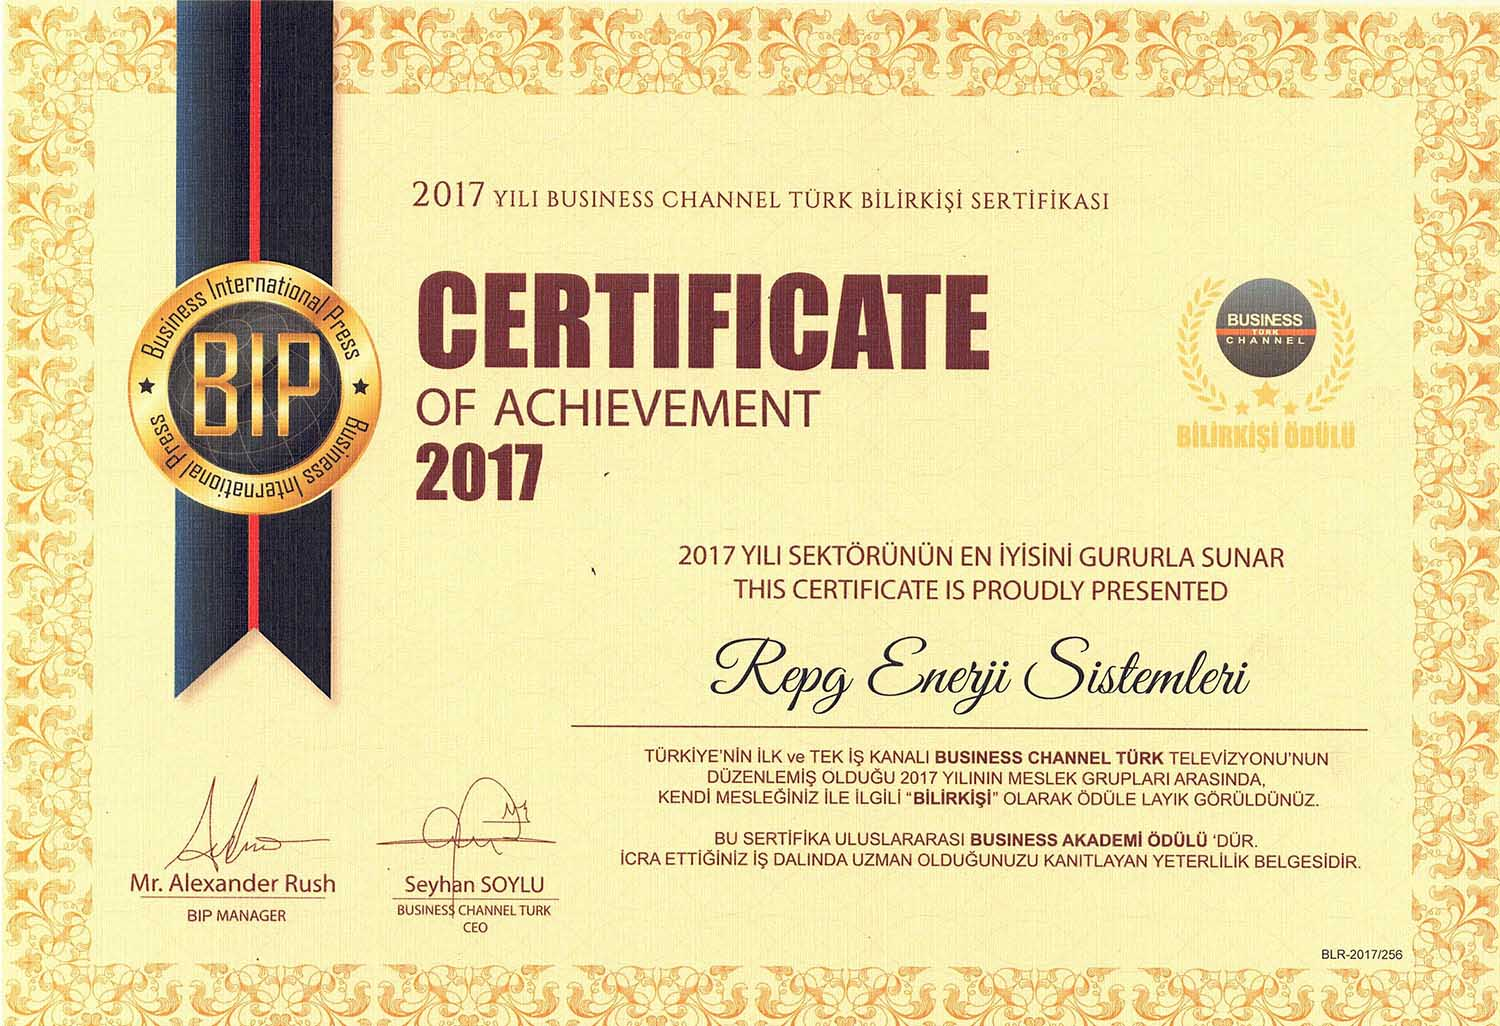 2017 Busines Channel Turkish Expert Certificate RePG